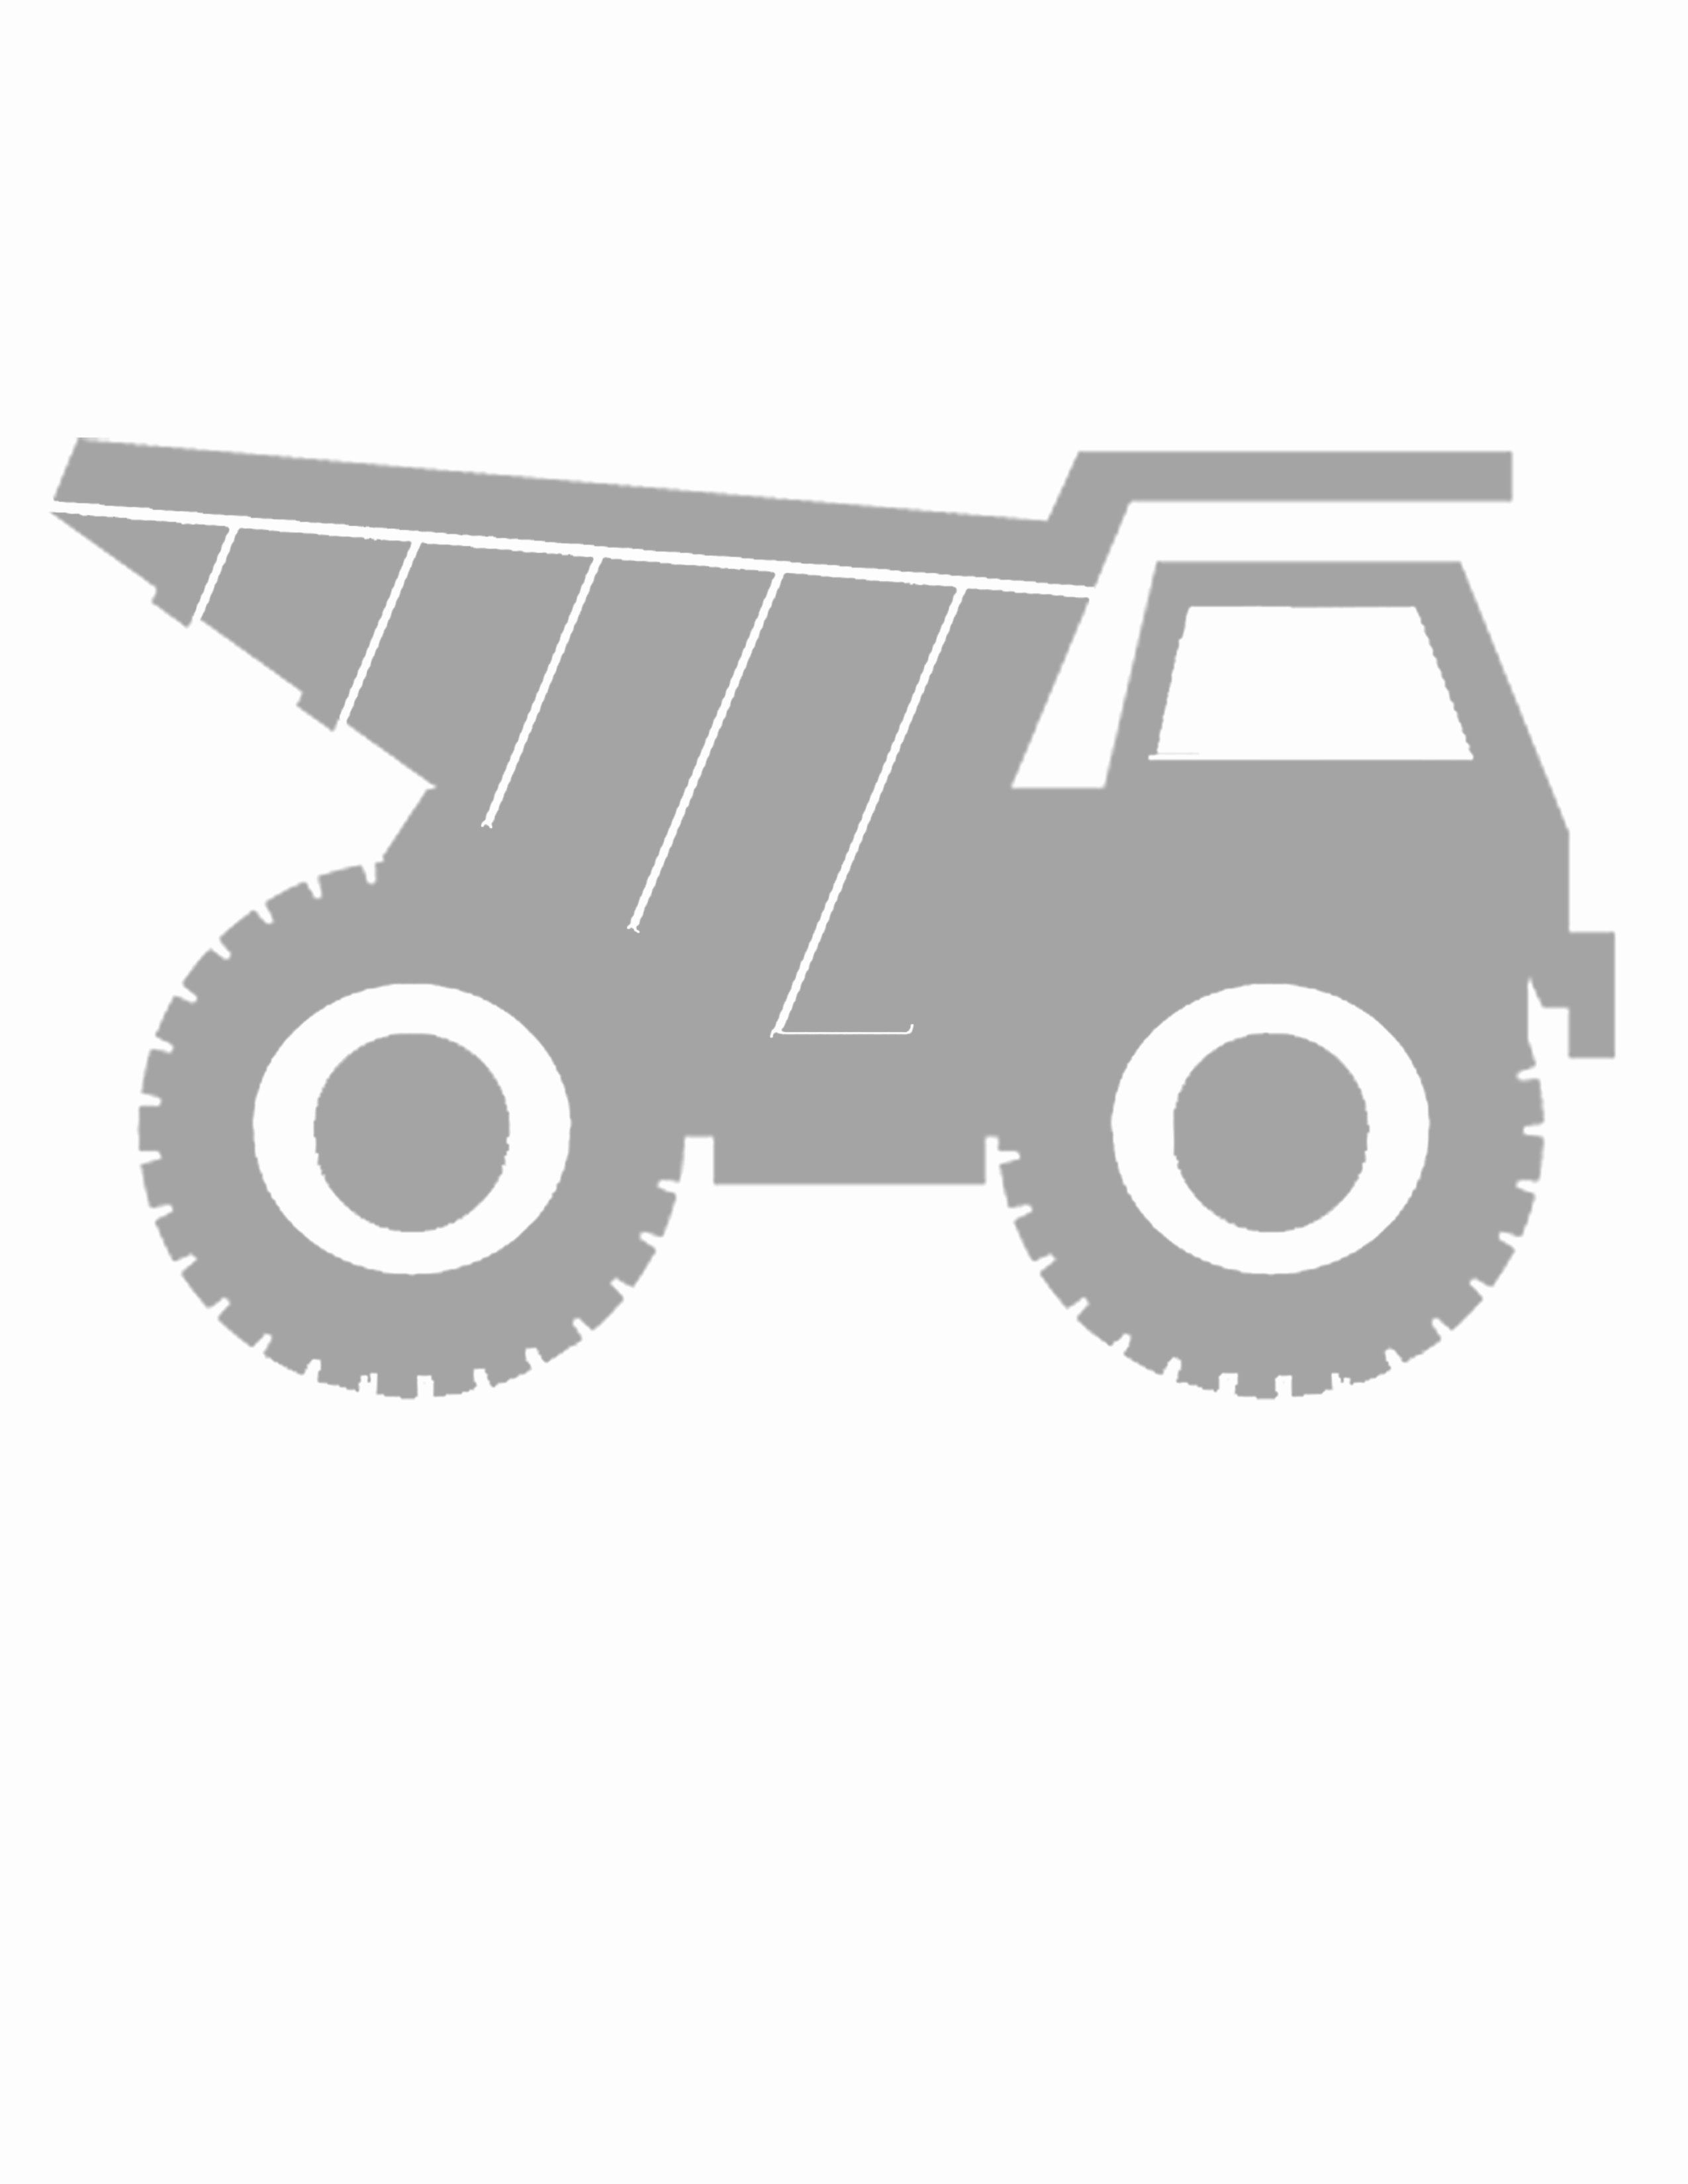 Tonka Truck Coloring Pages New Tonka Truck Silhouette